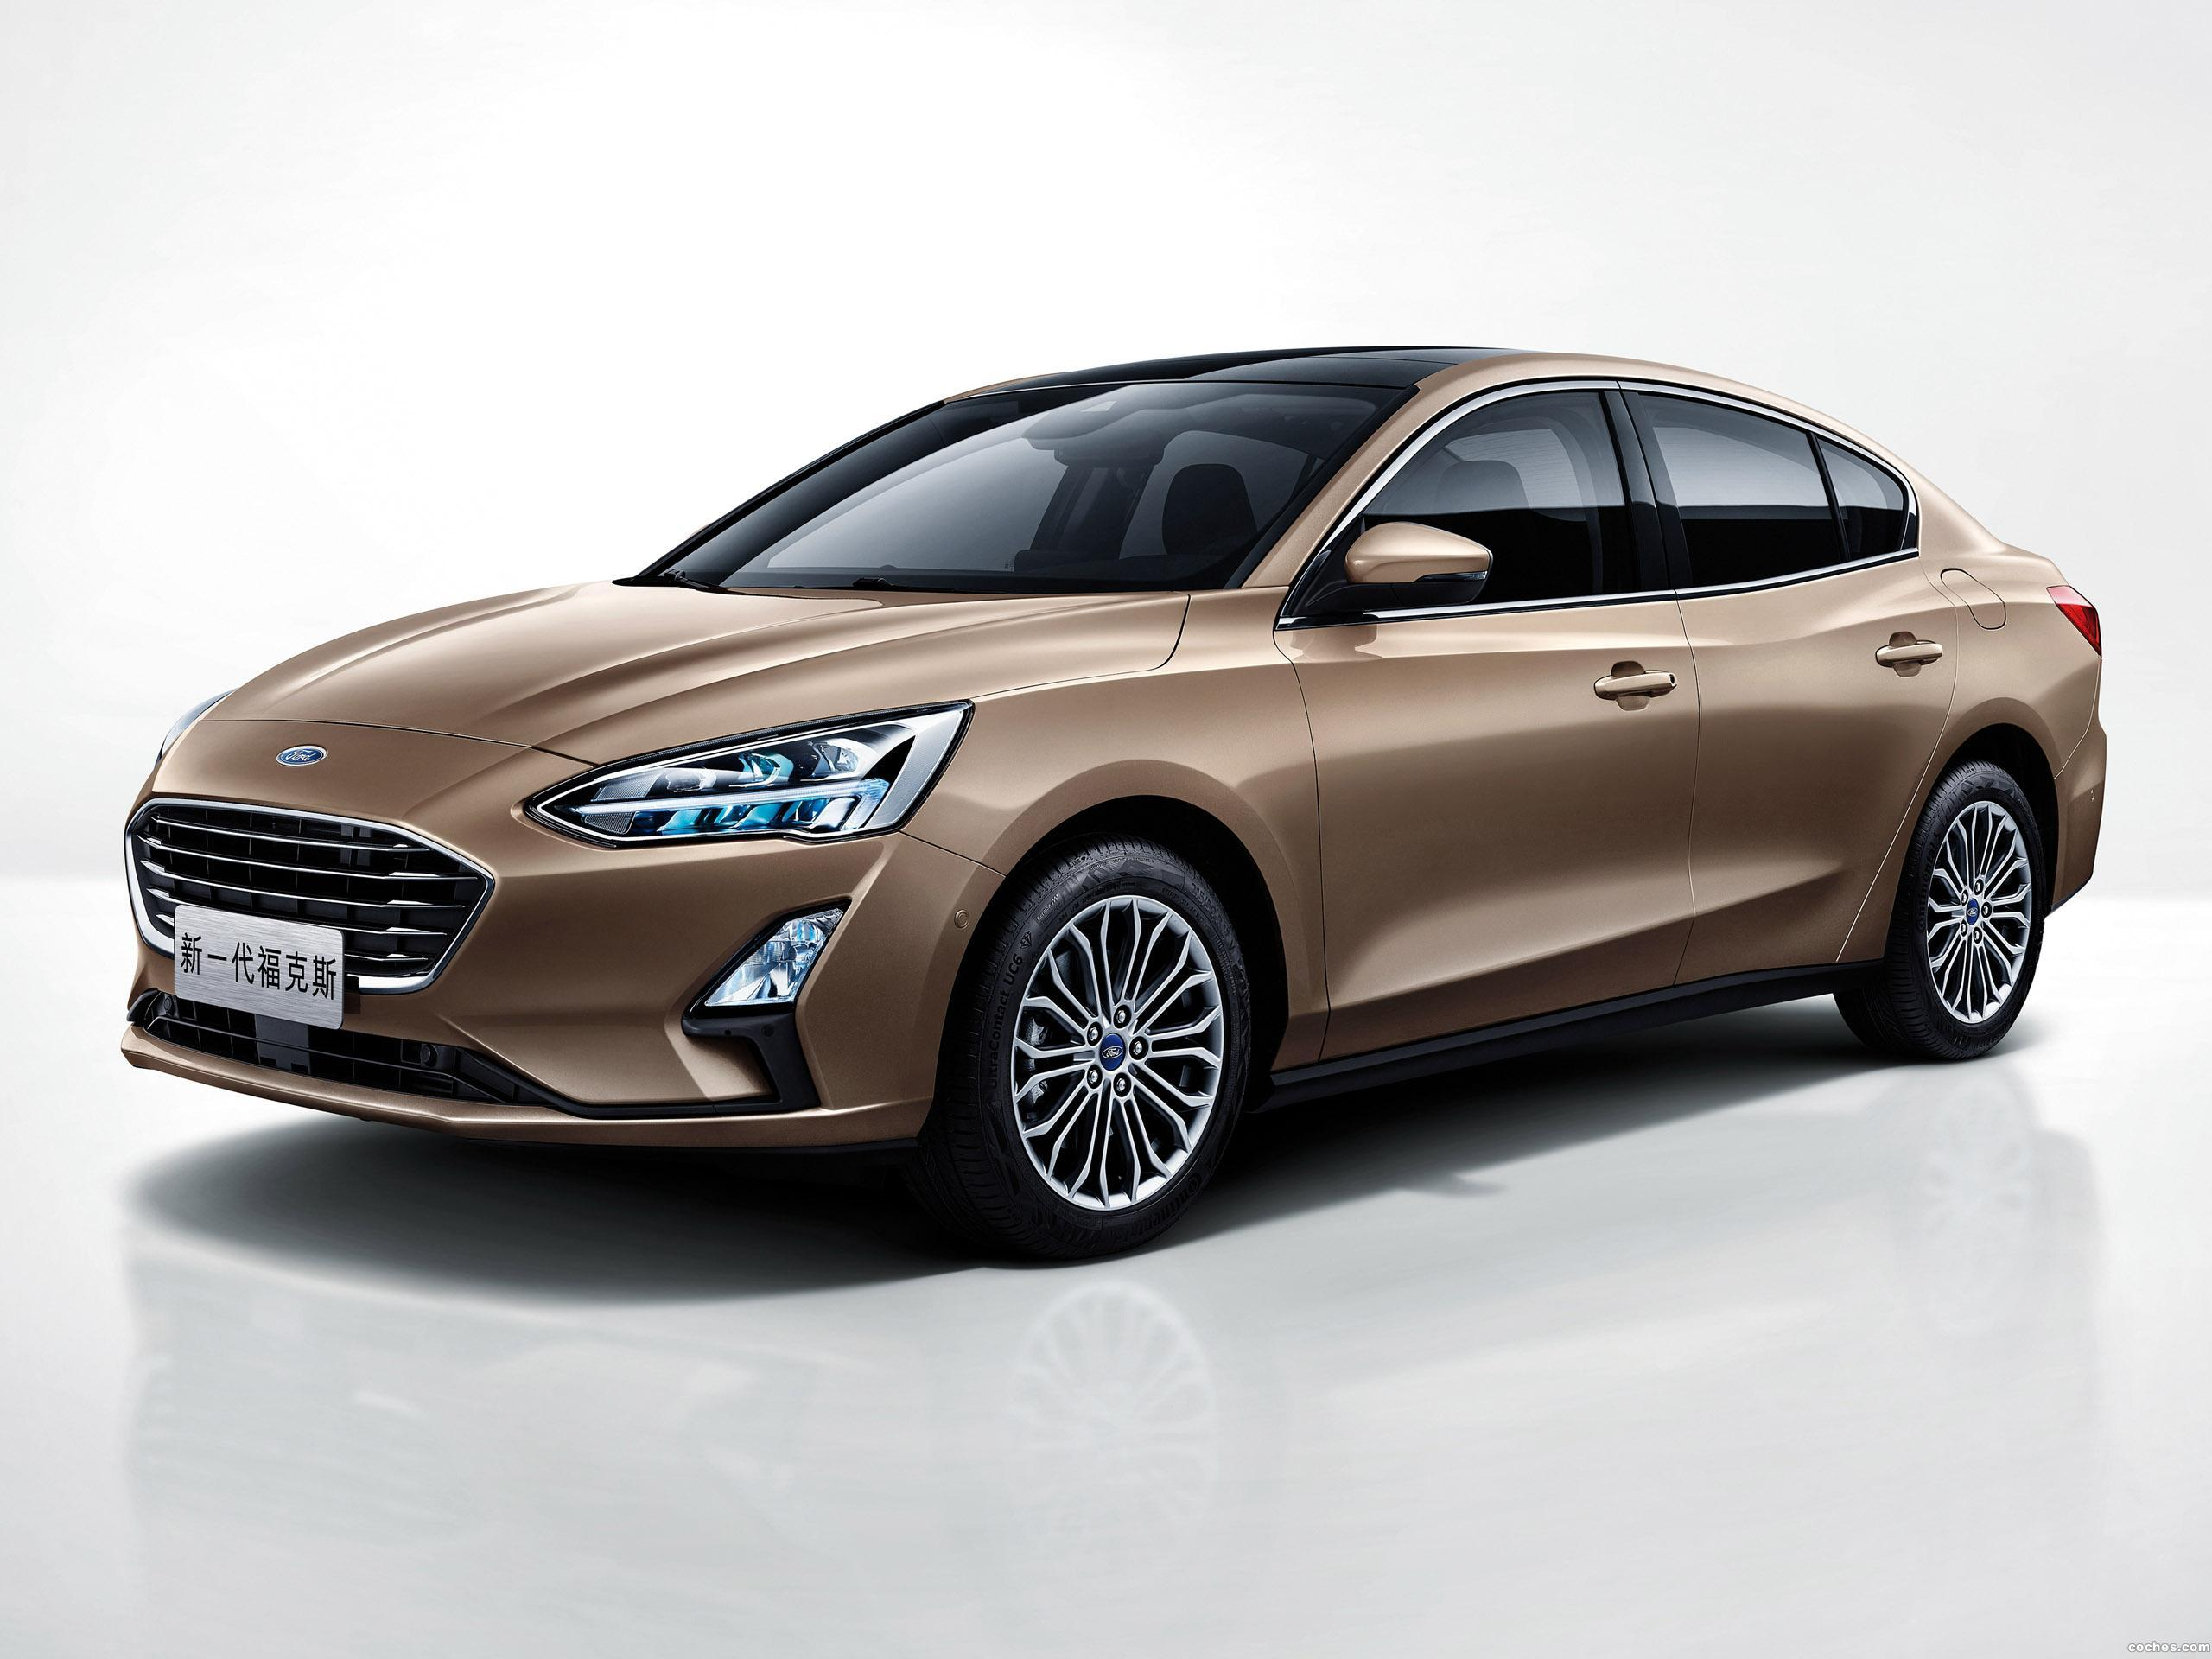 Foto 0 de Ford Focus Titanium Sedan China 2018